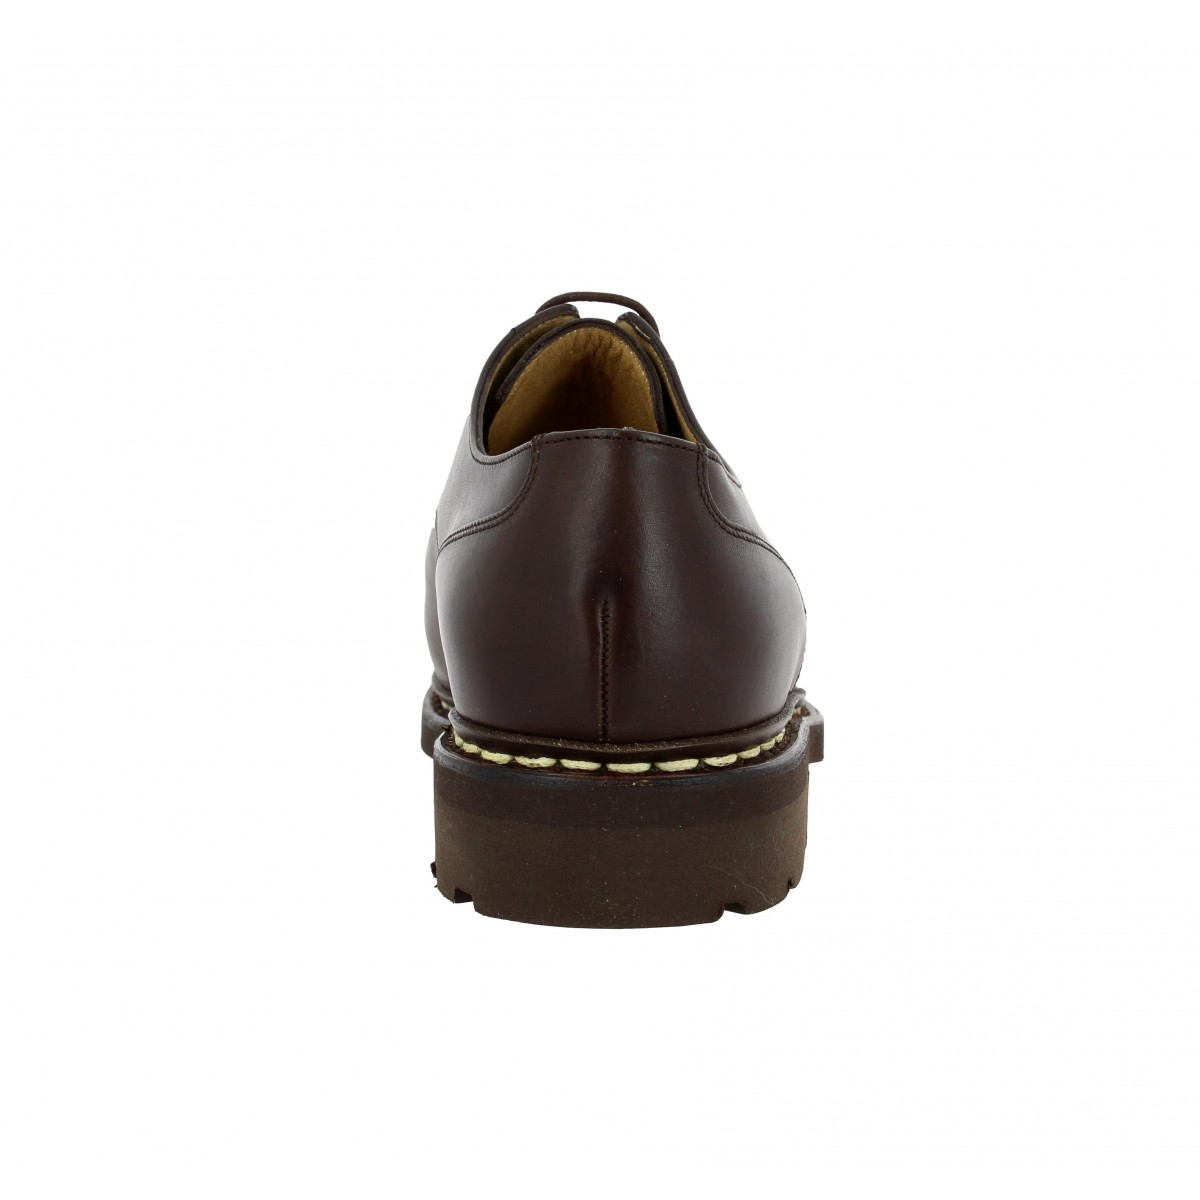 Chambord Cuir Chambord Paraboot Homme Paraboot Cuir Homme Cafe Cafe lF1JKTc